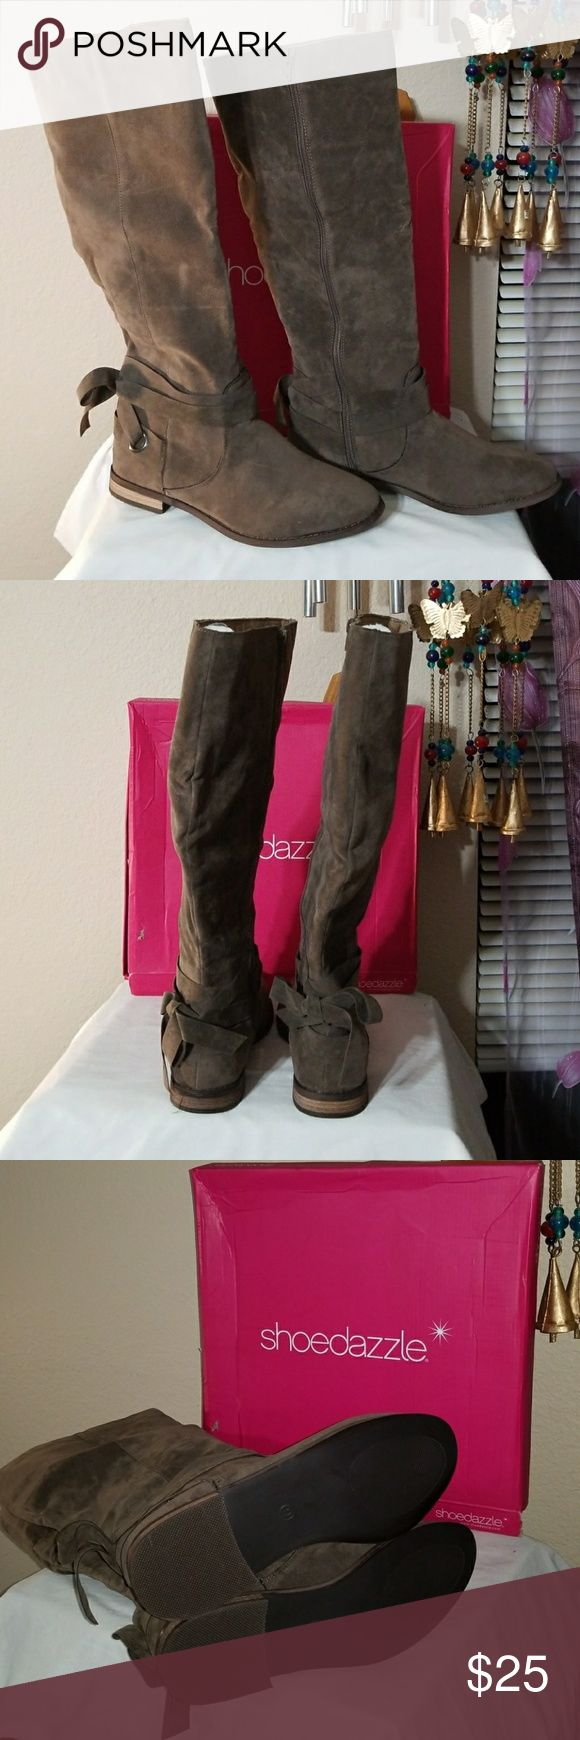 Brown faux leather high boots Brown faux leather high boots size 9 tried on once but my legs are too chunky, new with no tags Shoe Dazzle Shoes Heeled Boots